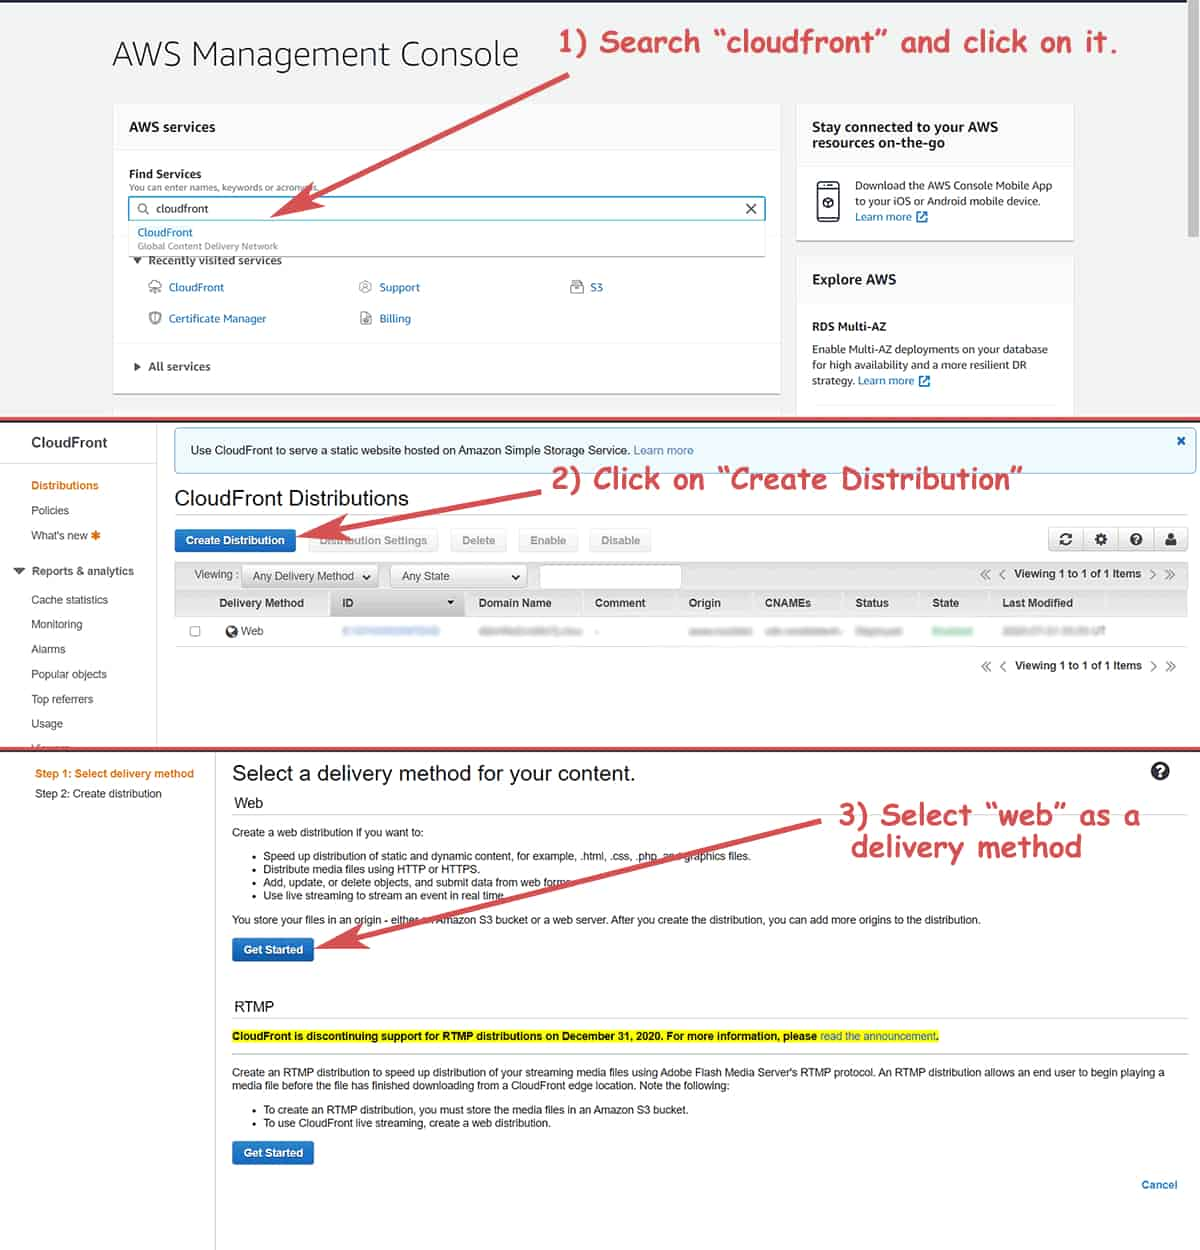 Create Distribution to set up CloudFront for WordPress